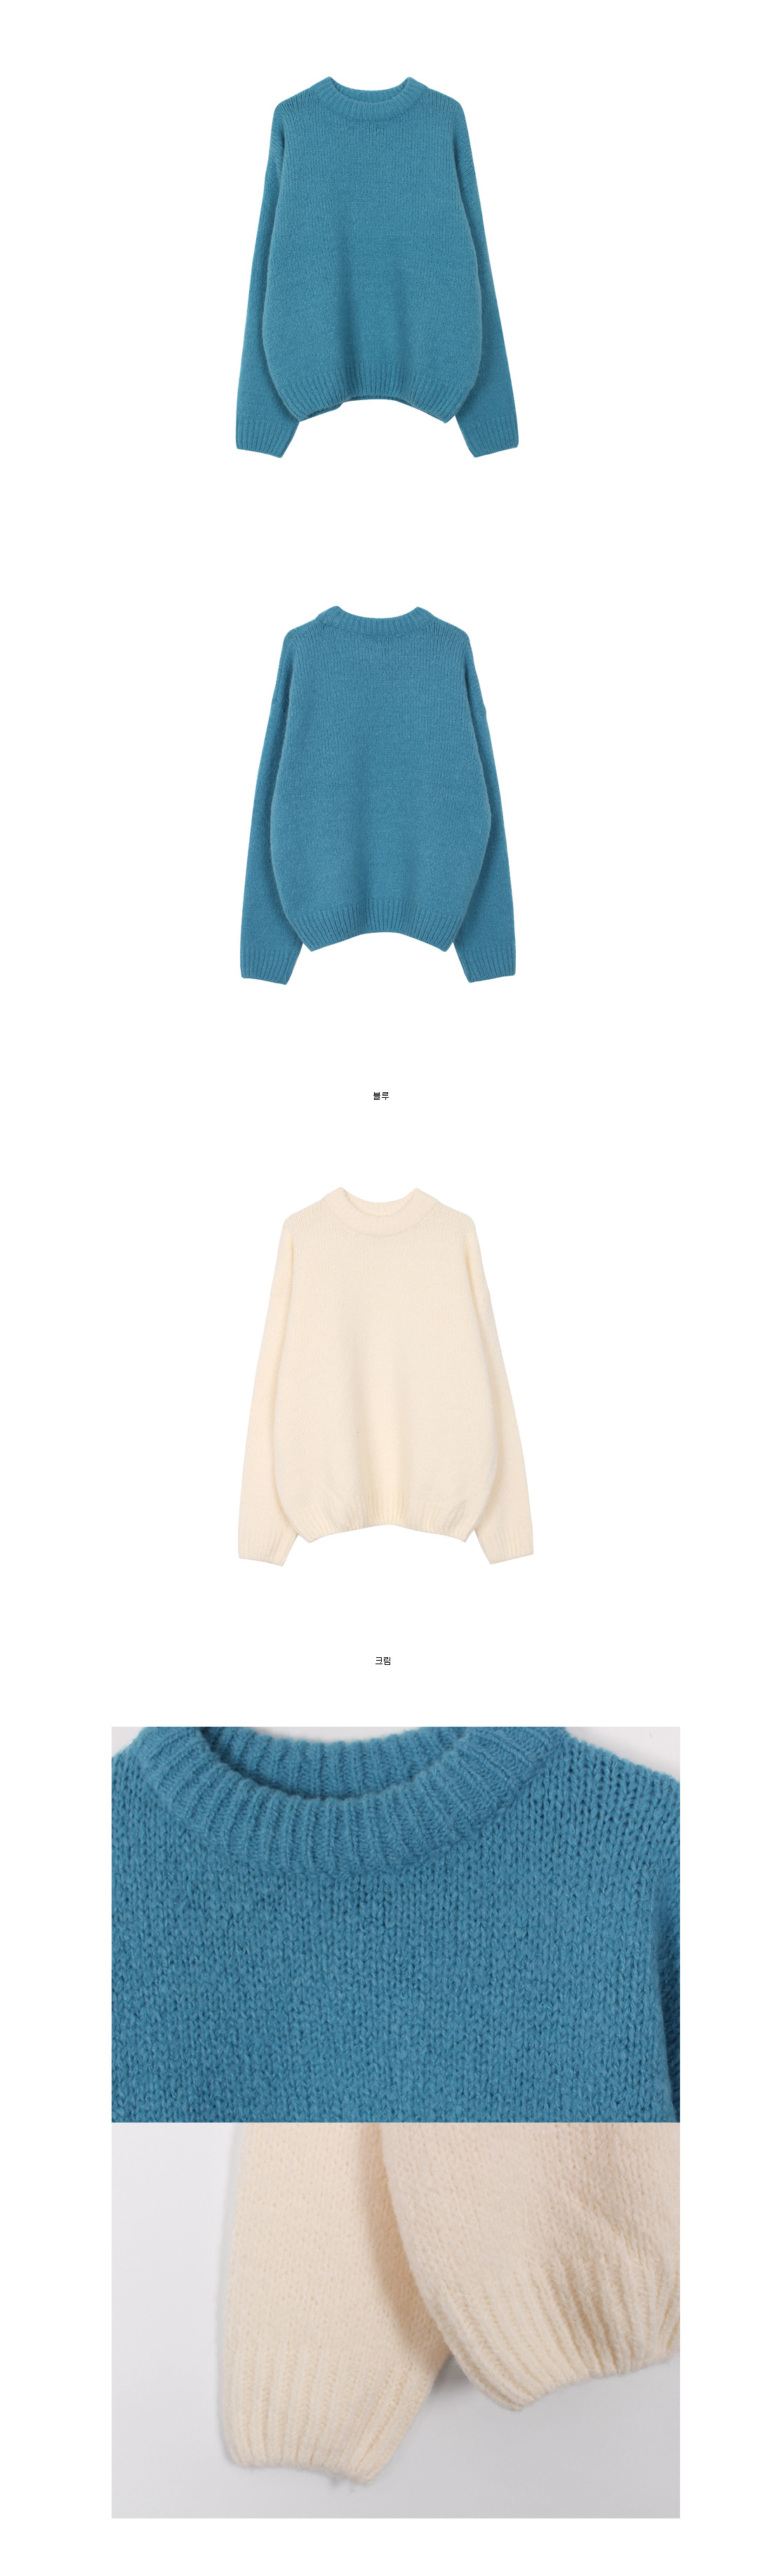 Round loose knit